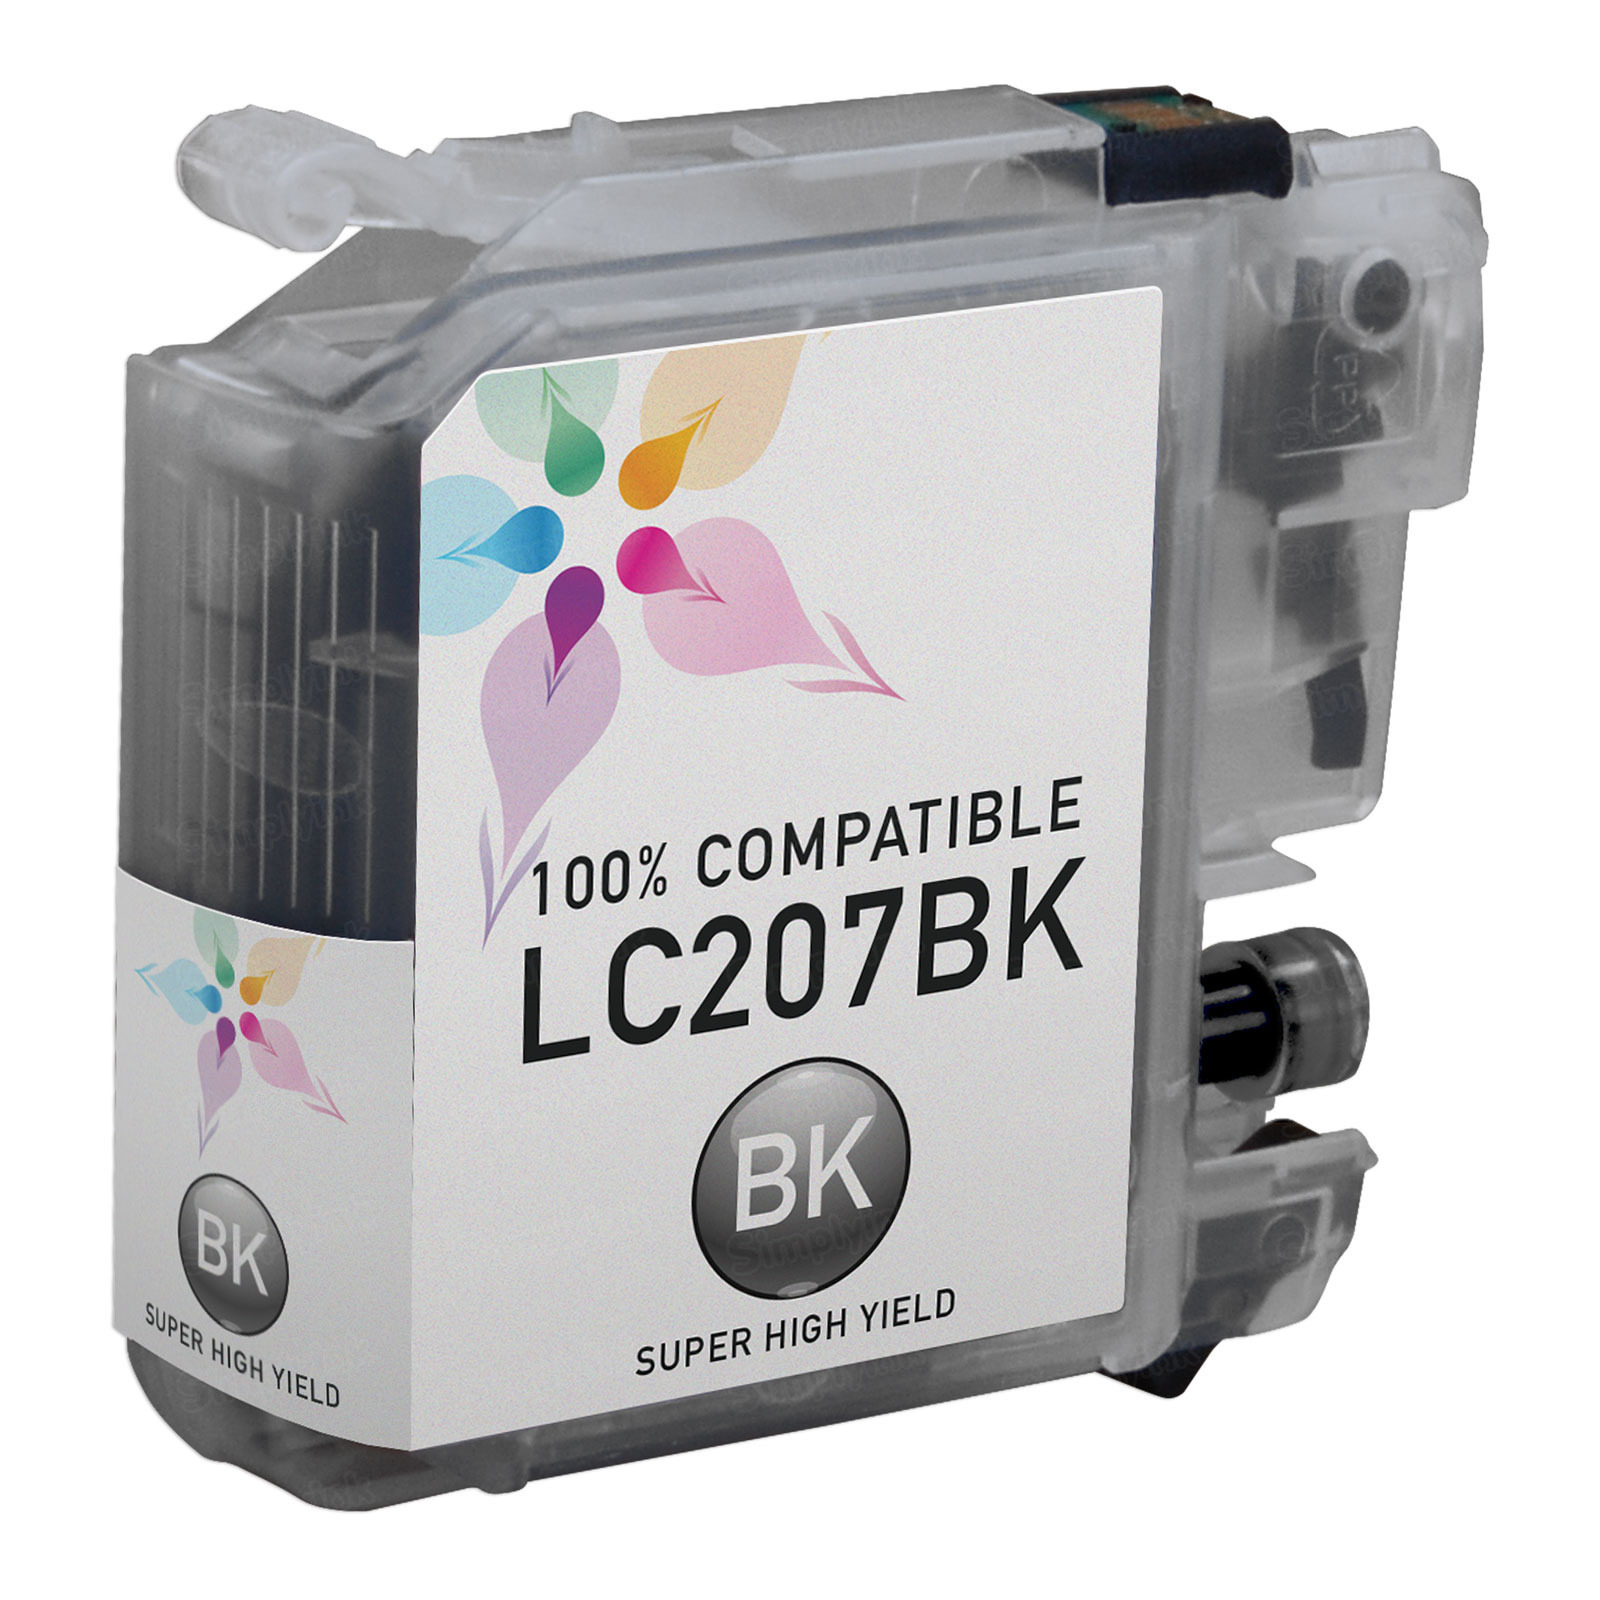 Compatible LC207BK Super HY Black Ink for Brother